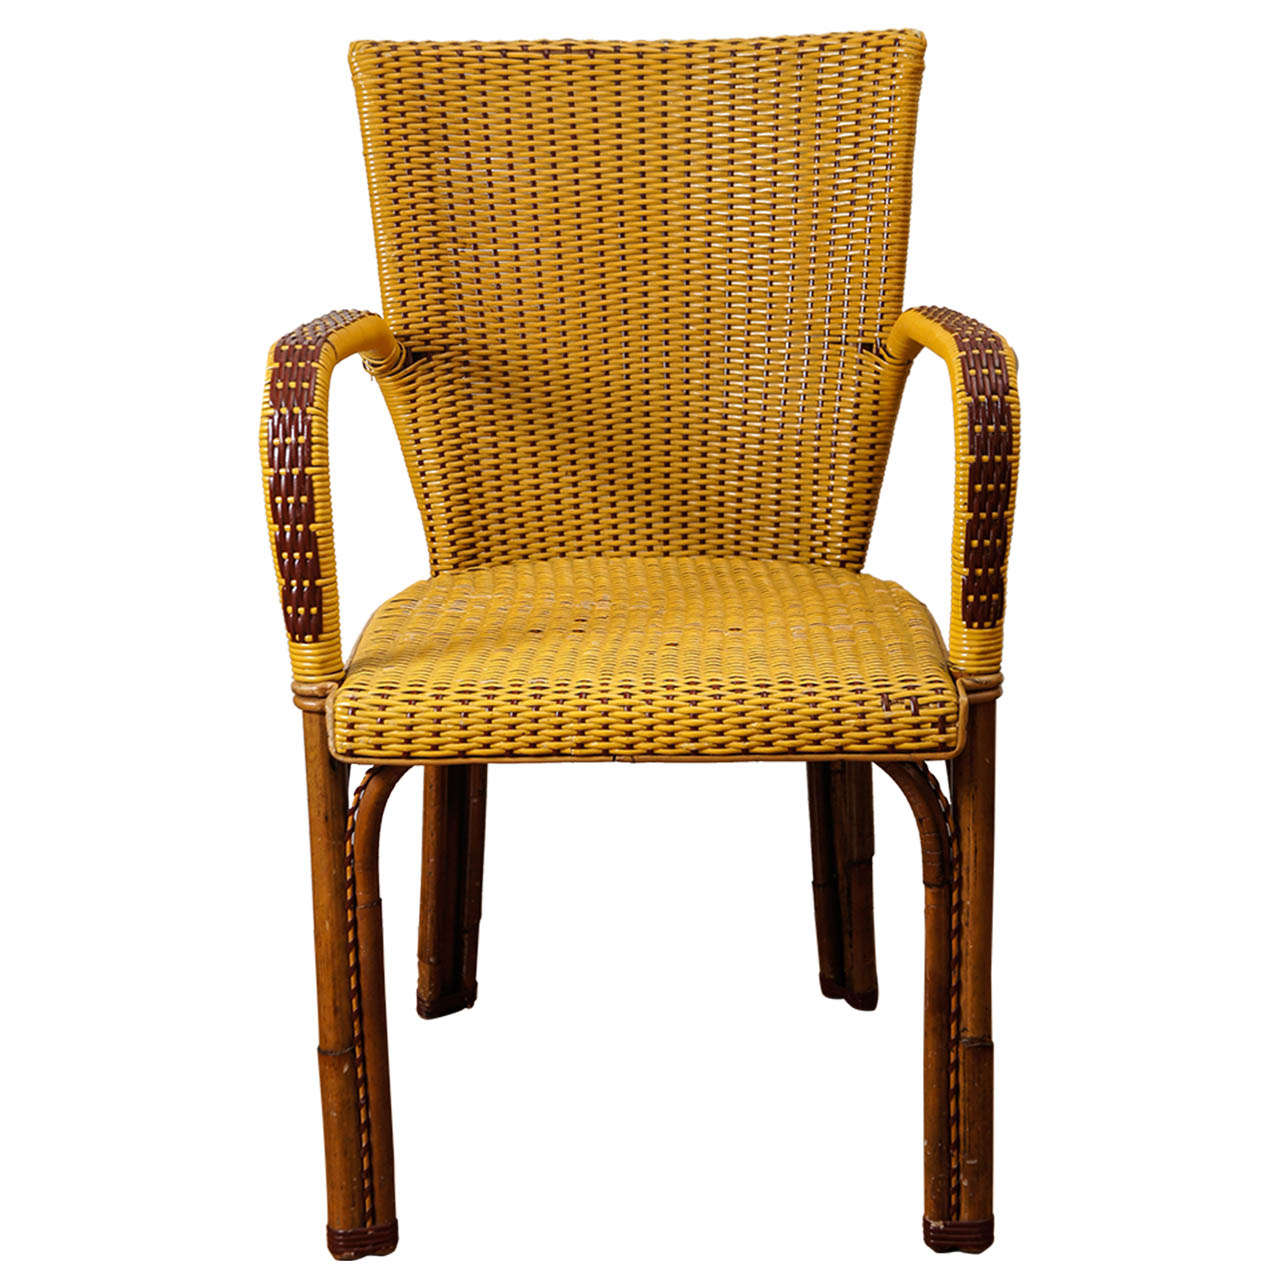 Cafe Chairs For Sale French Wicker Bistro Chairs At 1stdibs